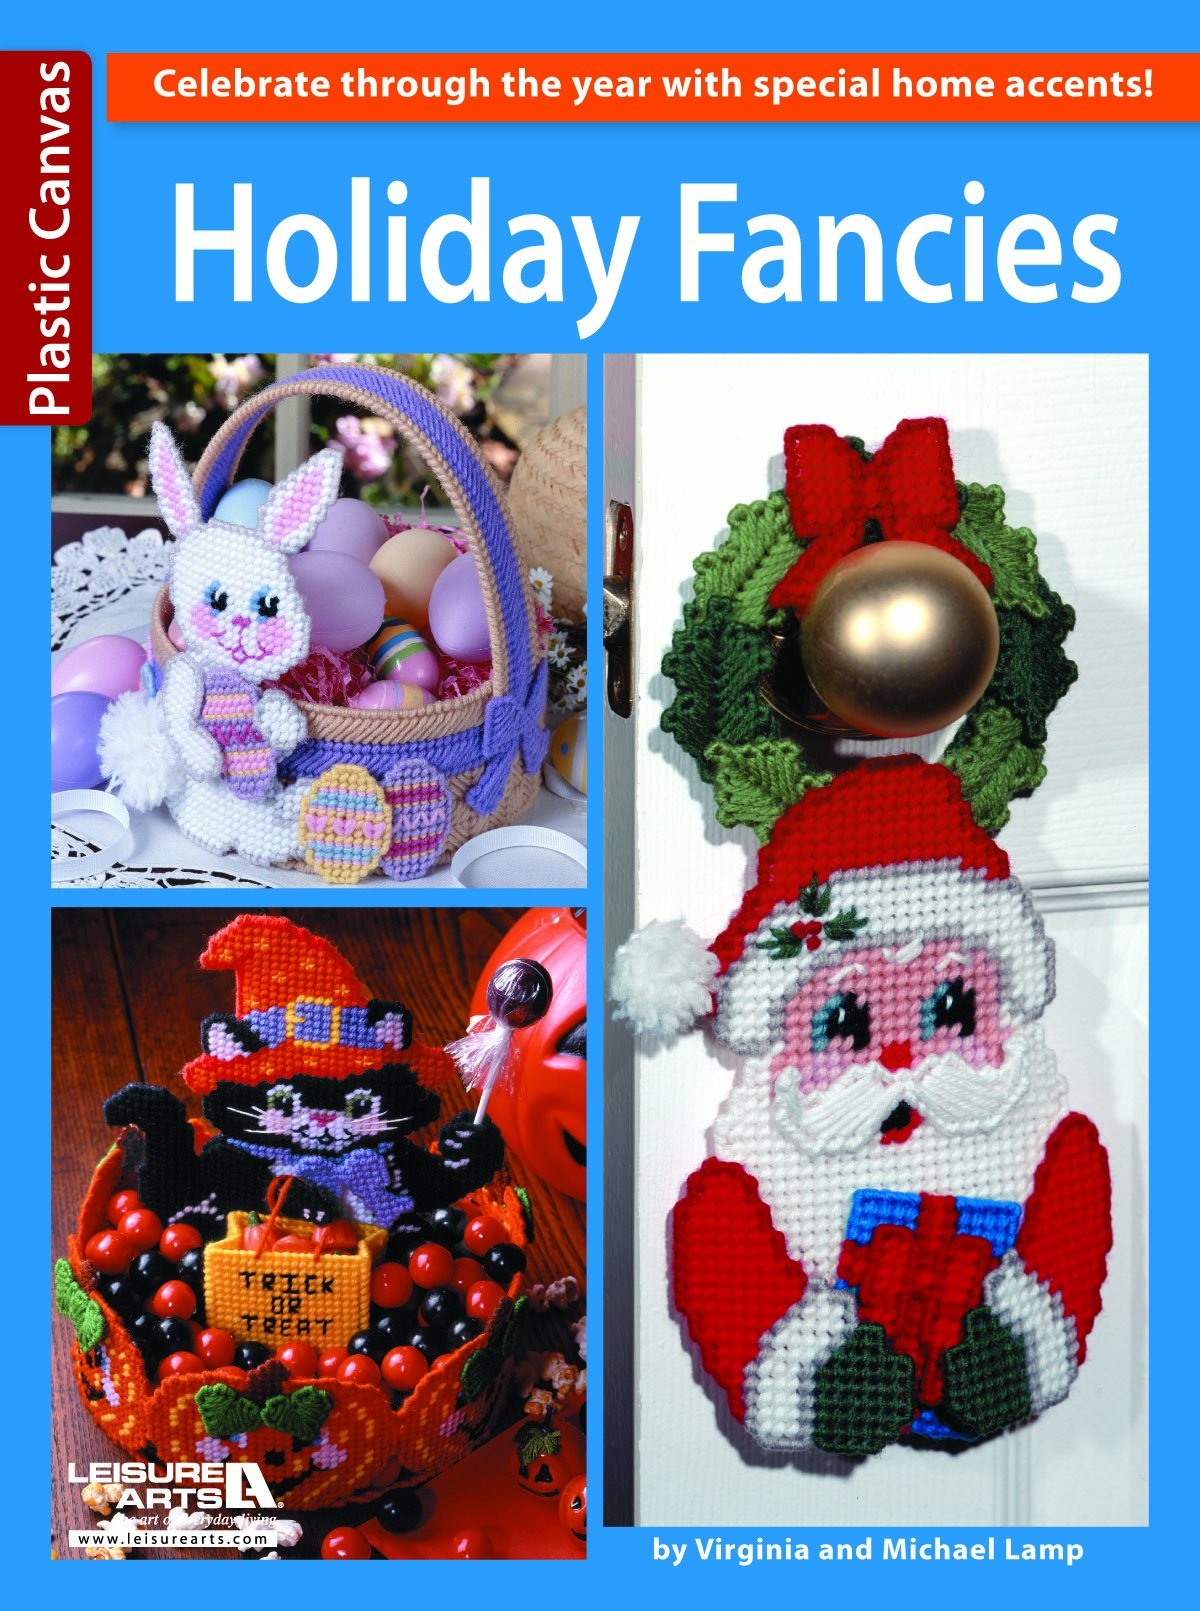 LEISURE ARTS Holiday Fancies by LEISURE ARTS